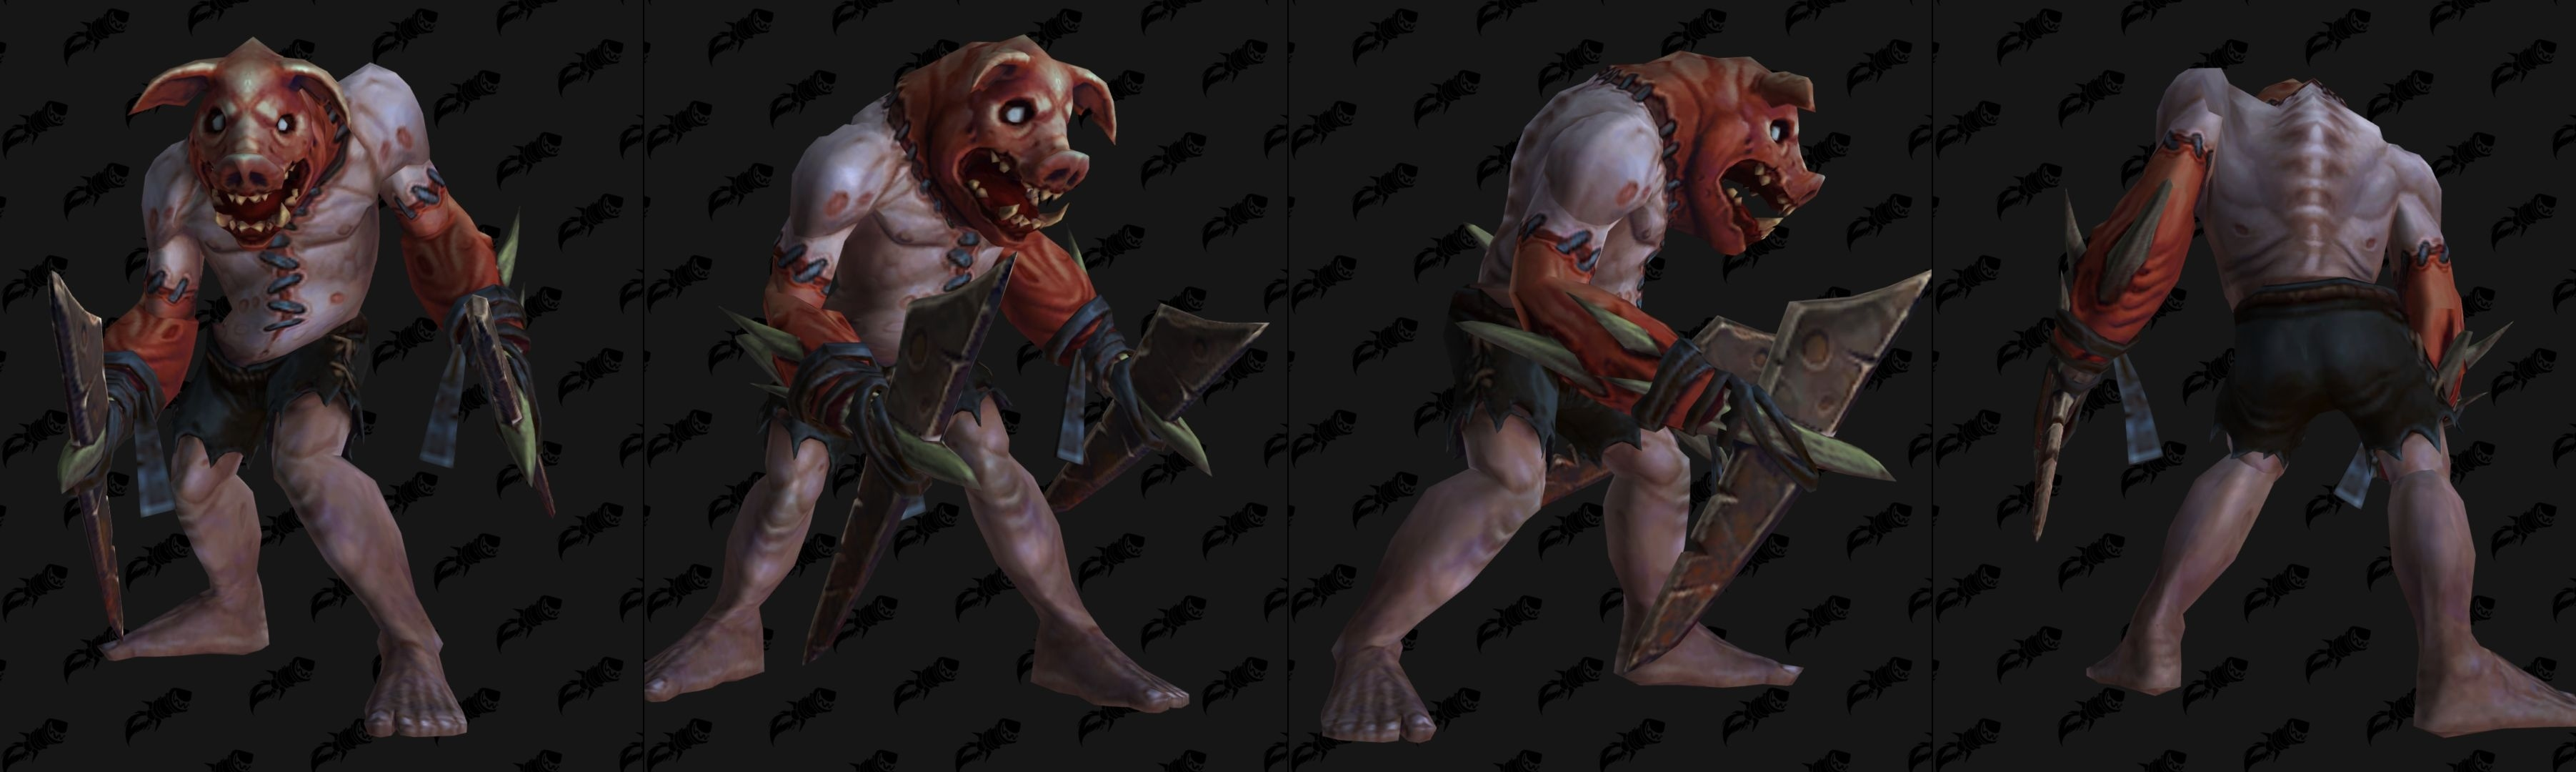 WoW BfA Manbearpig